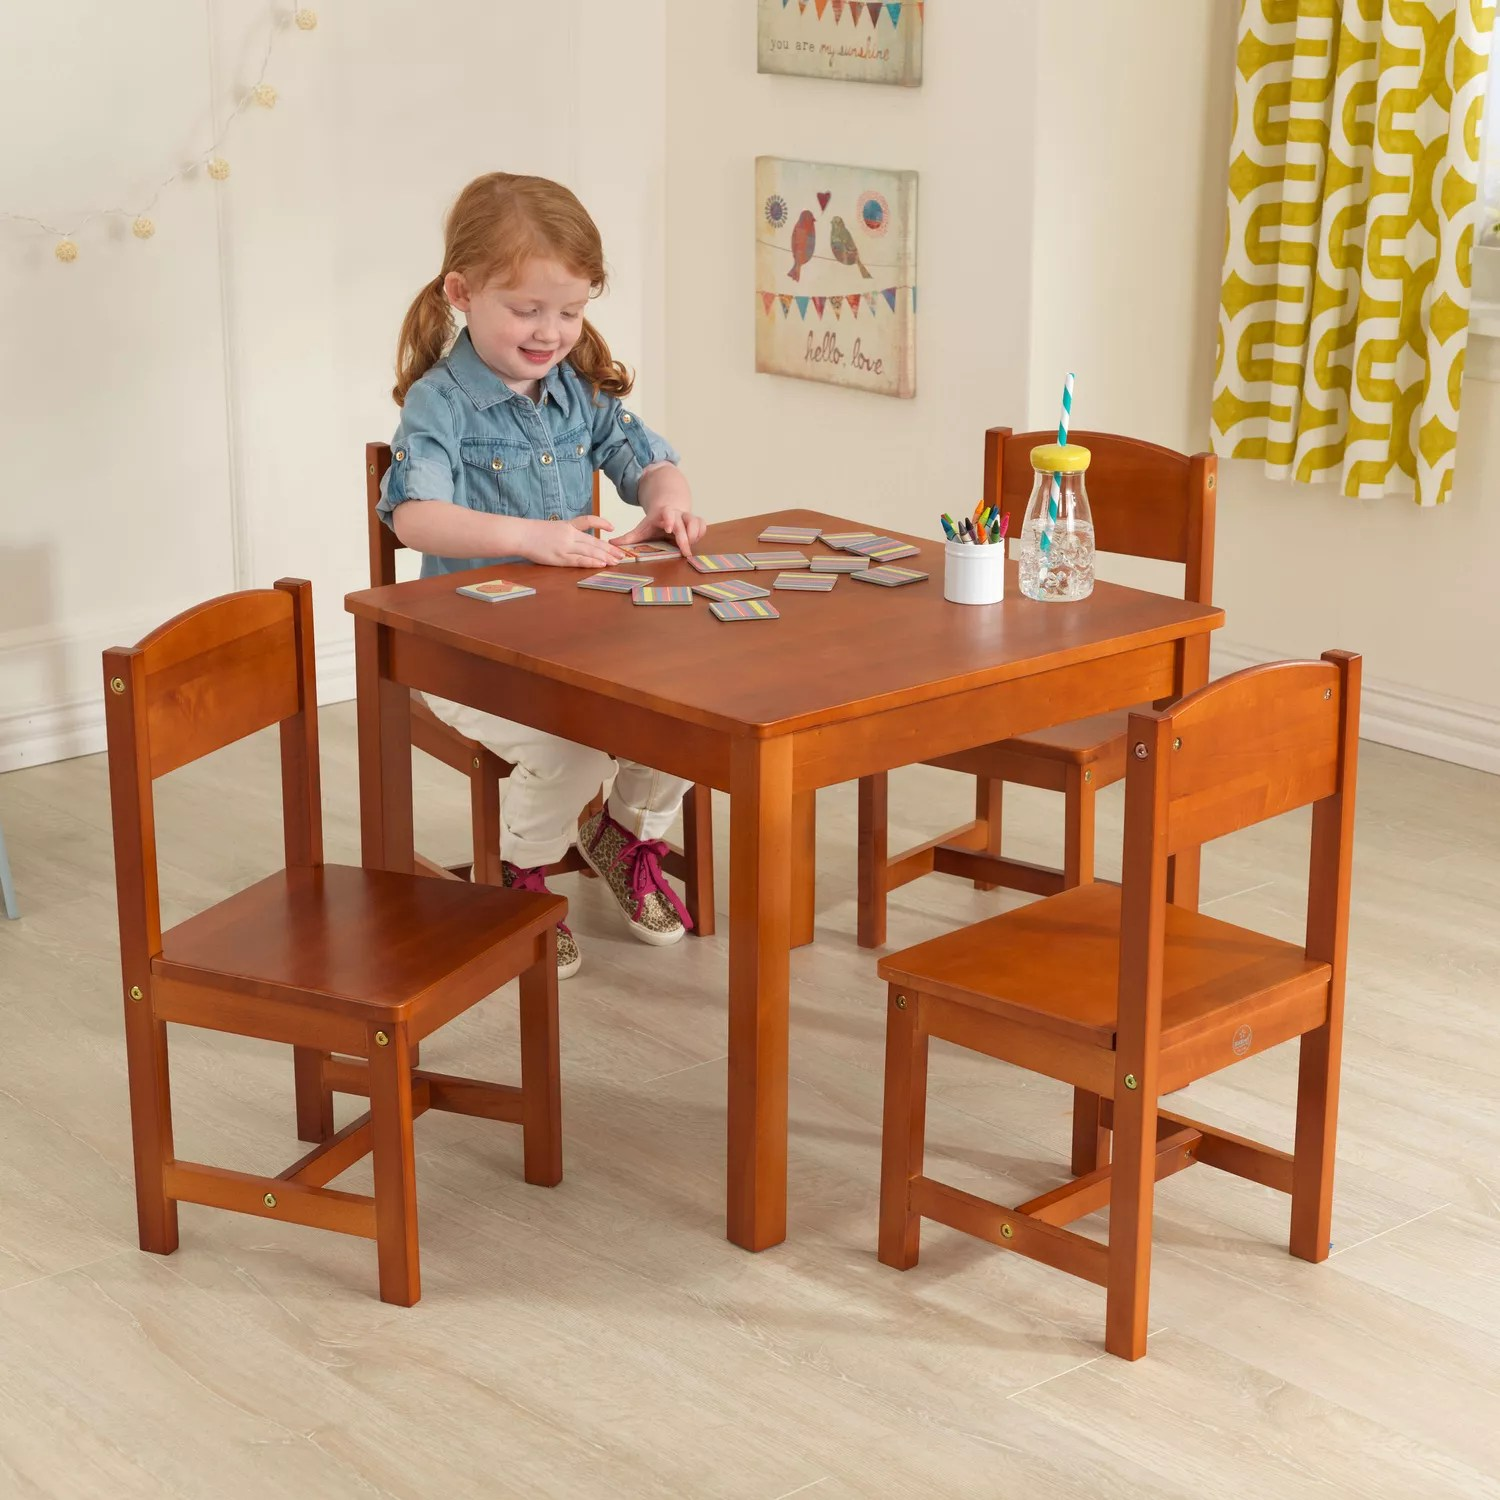 Kidkraft Heart Table And Chair Set Kids Furniture Collections Sets Furniture Kohl S